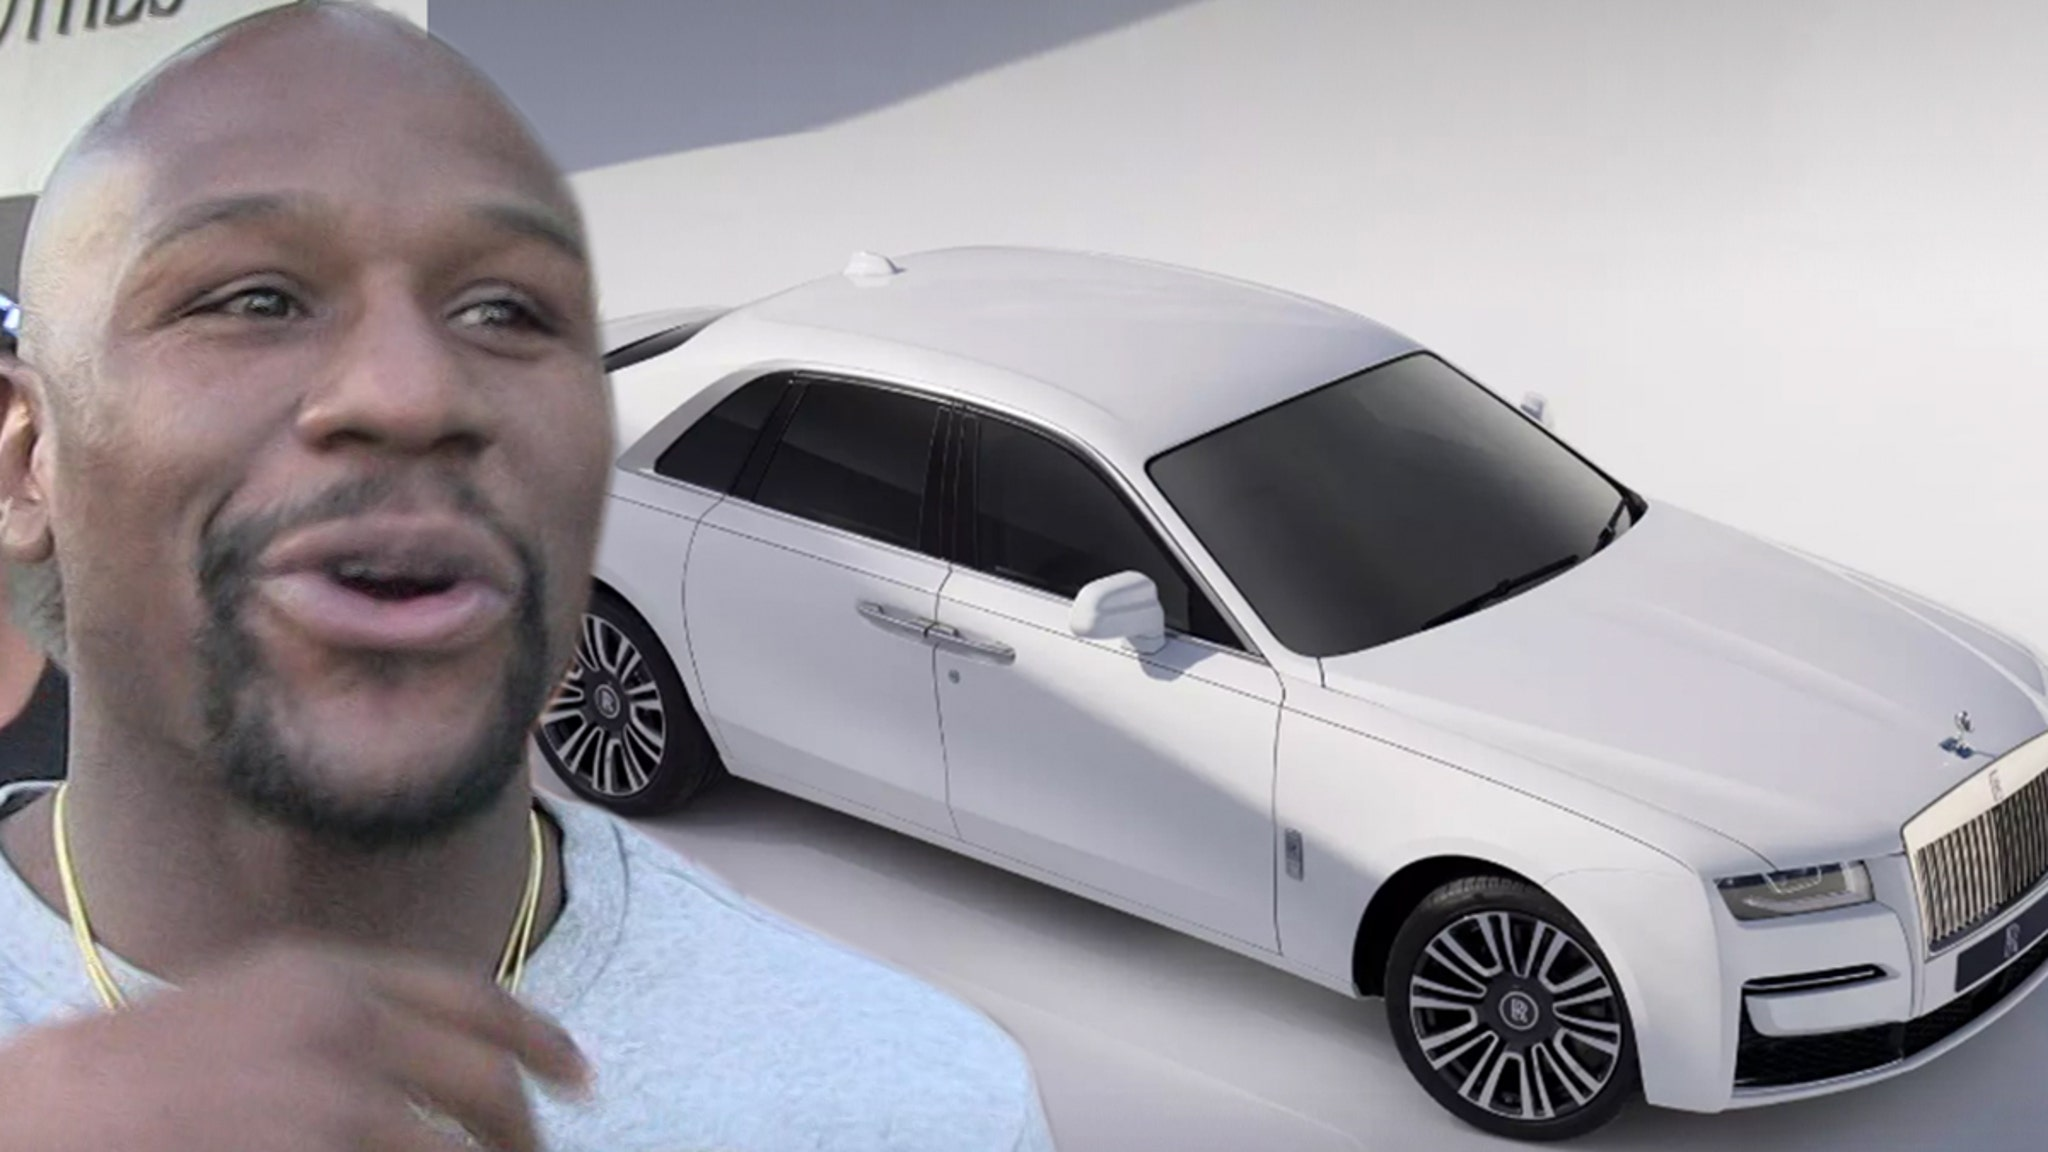 Floyd Mayweather Drops $1 Million On Cars for His Inner Circle, Rolls-Royce for Himself thumbnail